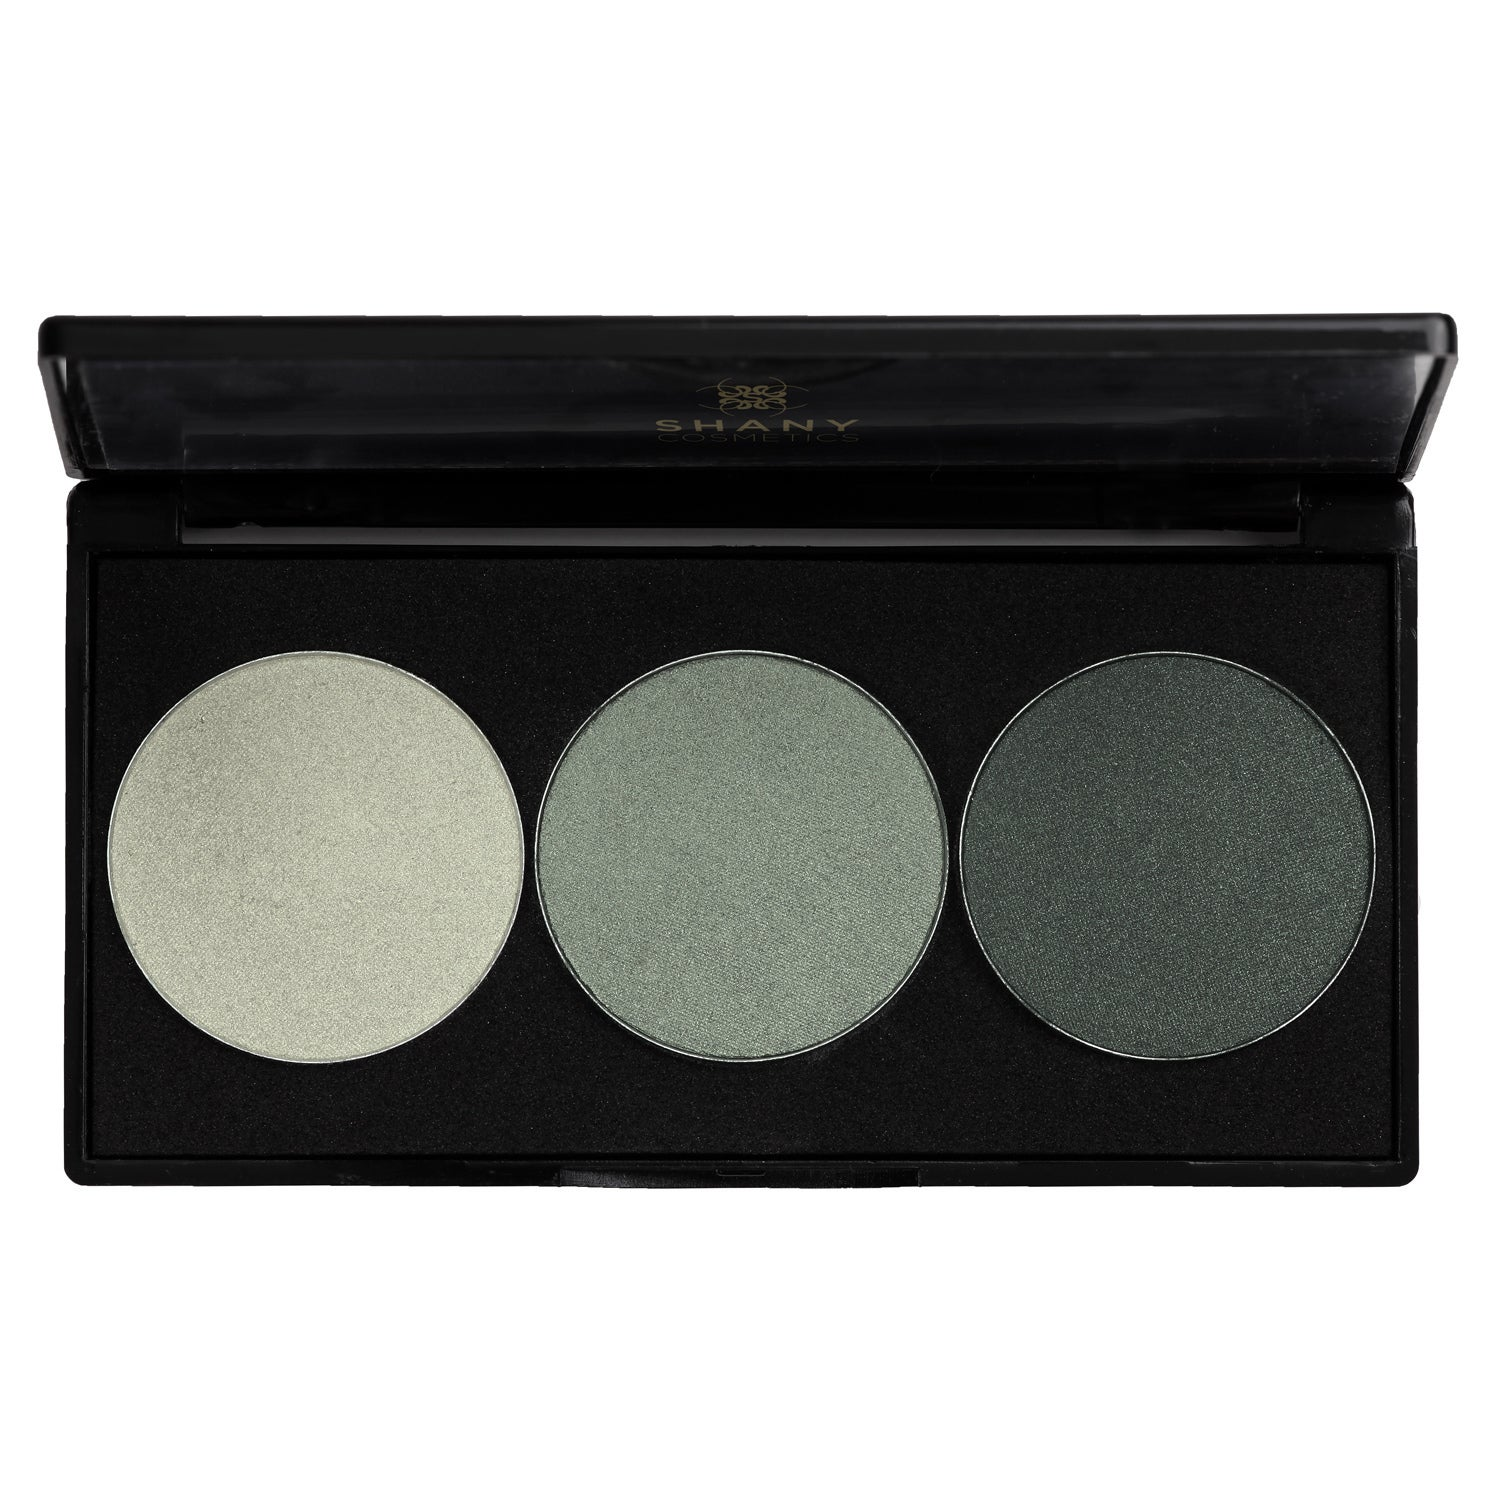 Shany Cosmetics Everyday Travel Trio Eyeshadow Palette at Sears.com